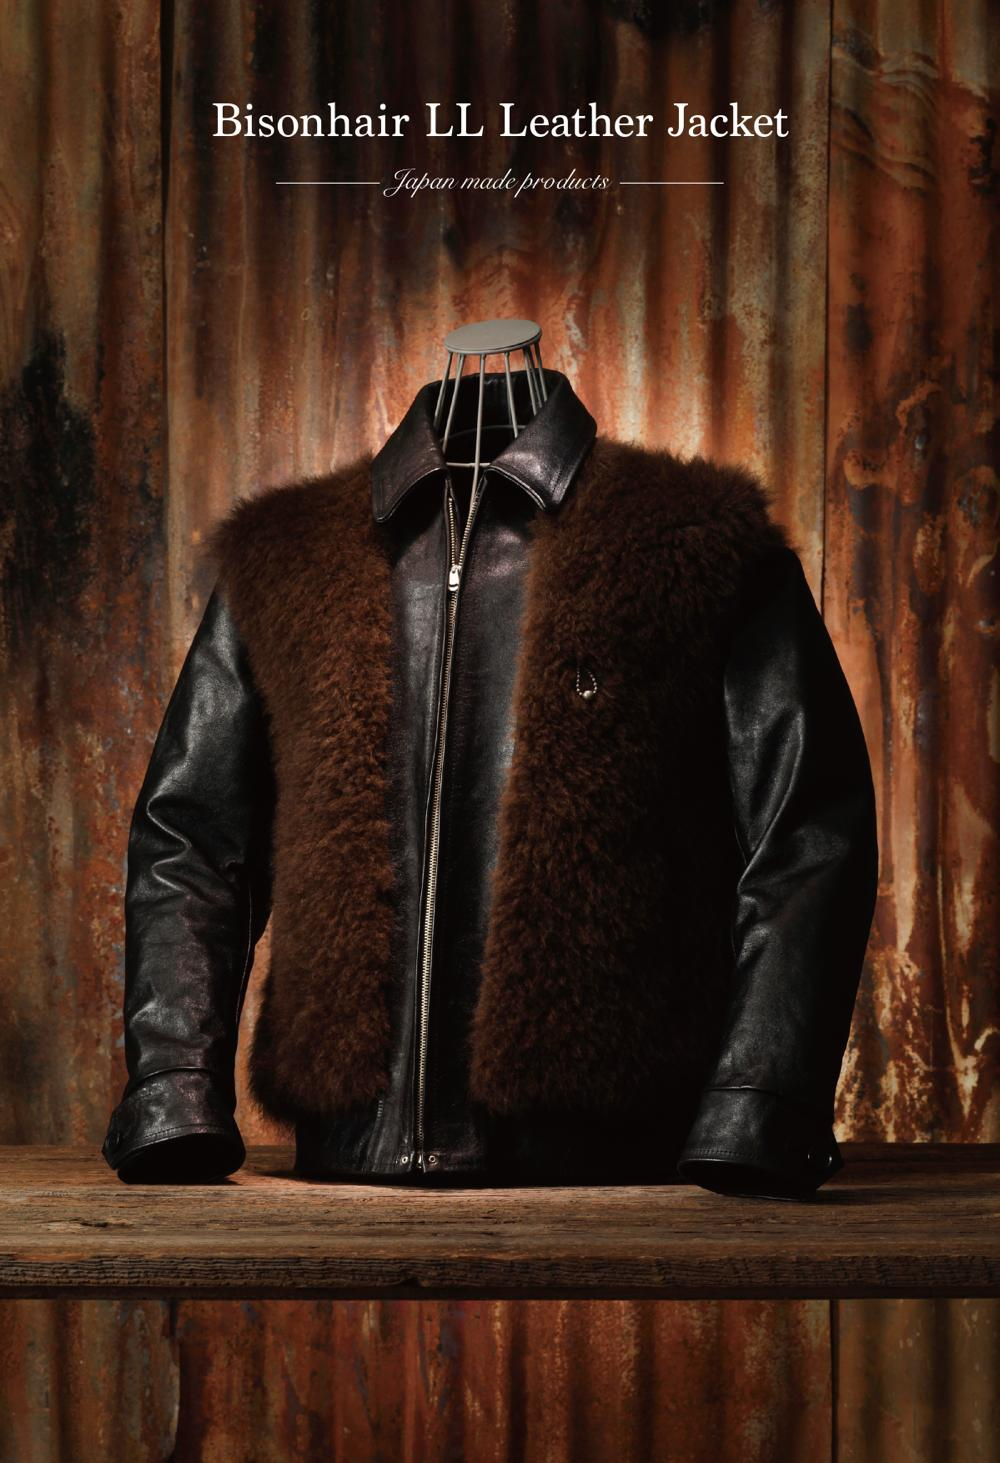 【Attractions】 Bisonhair LL Leather Jacket_c0289919_17231025.jpg